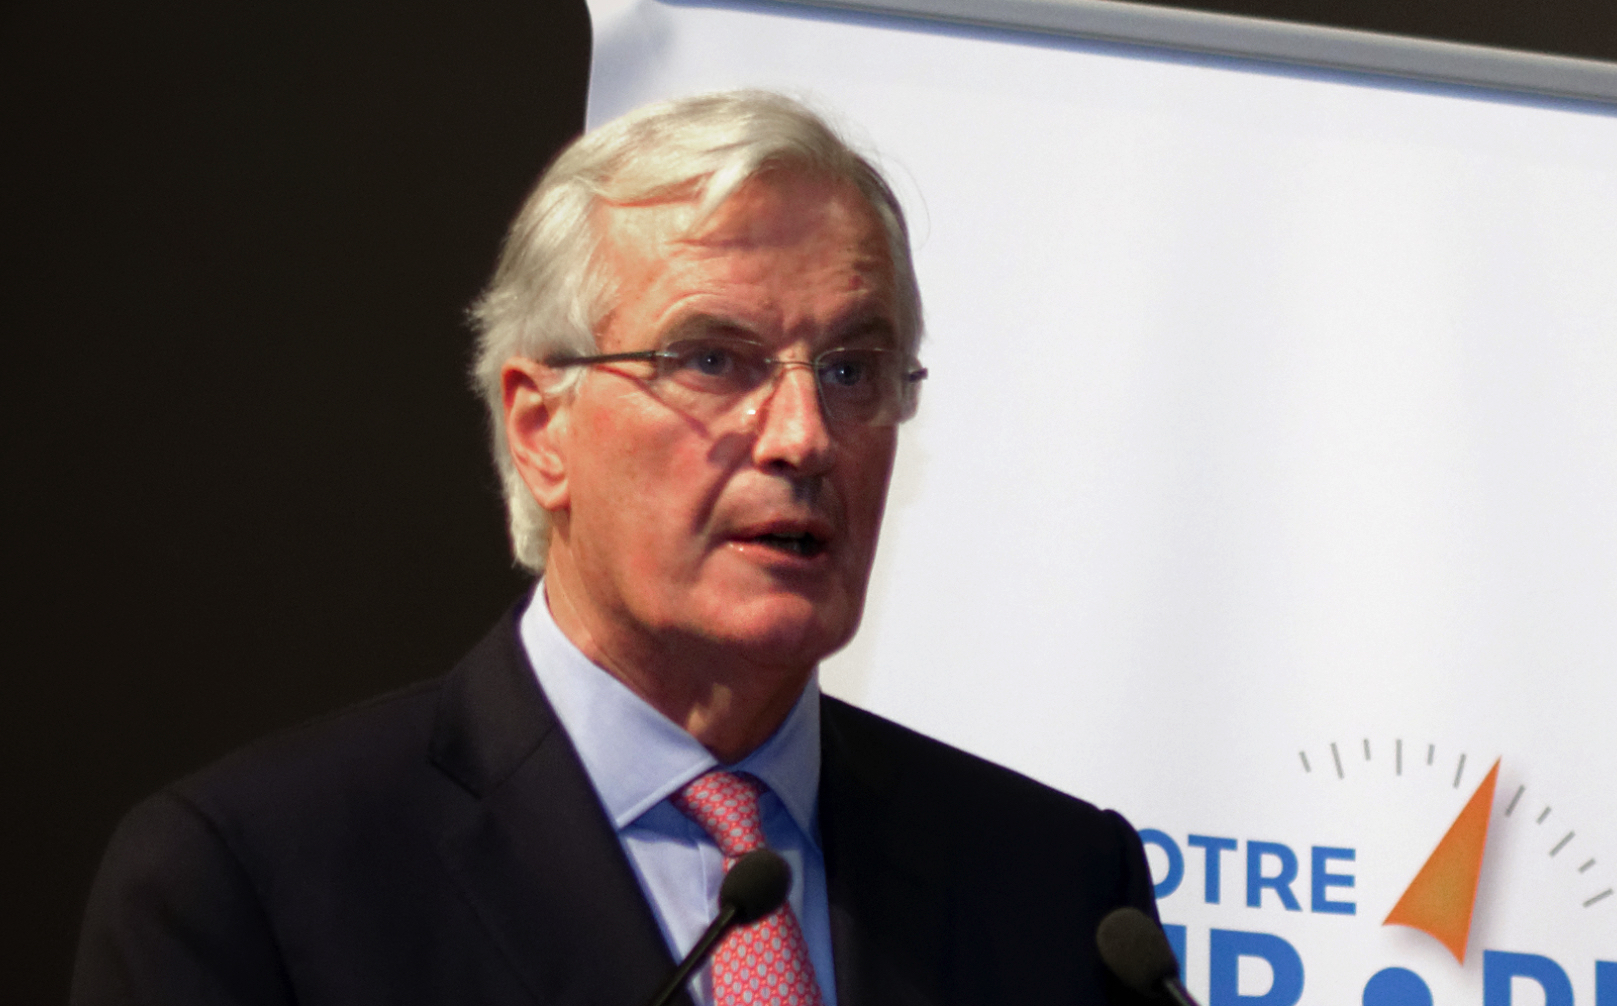 Michel Barnier by The Jacques Delors Institute (CC-BY-2.0) 2